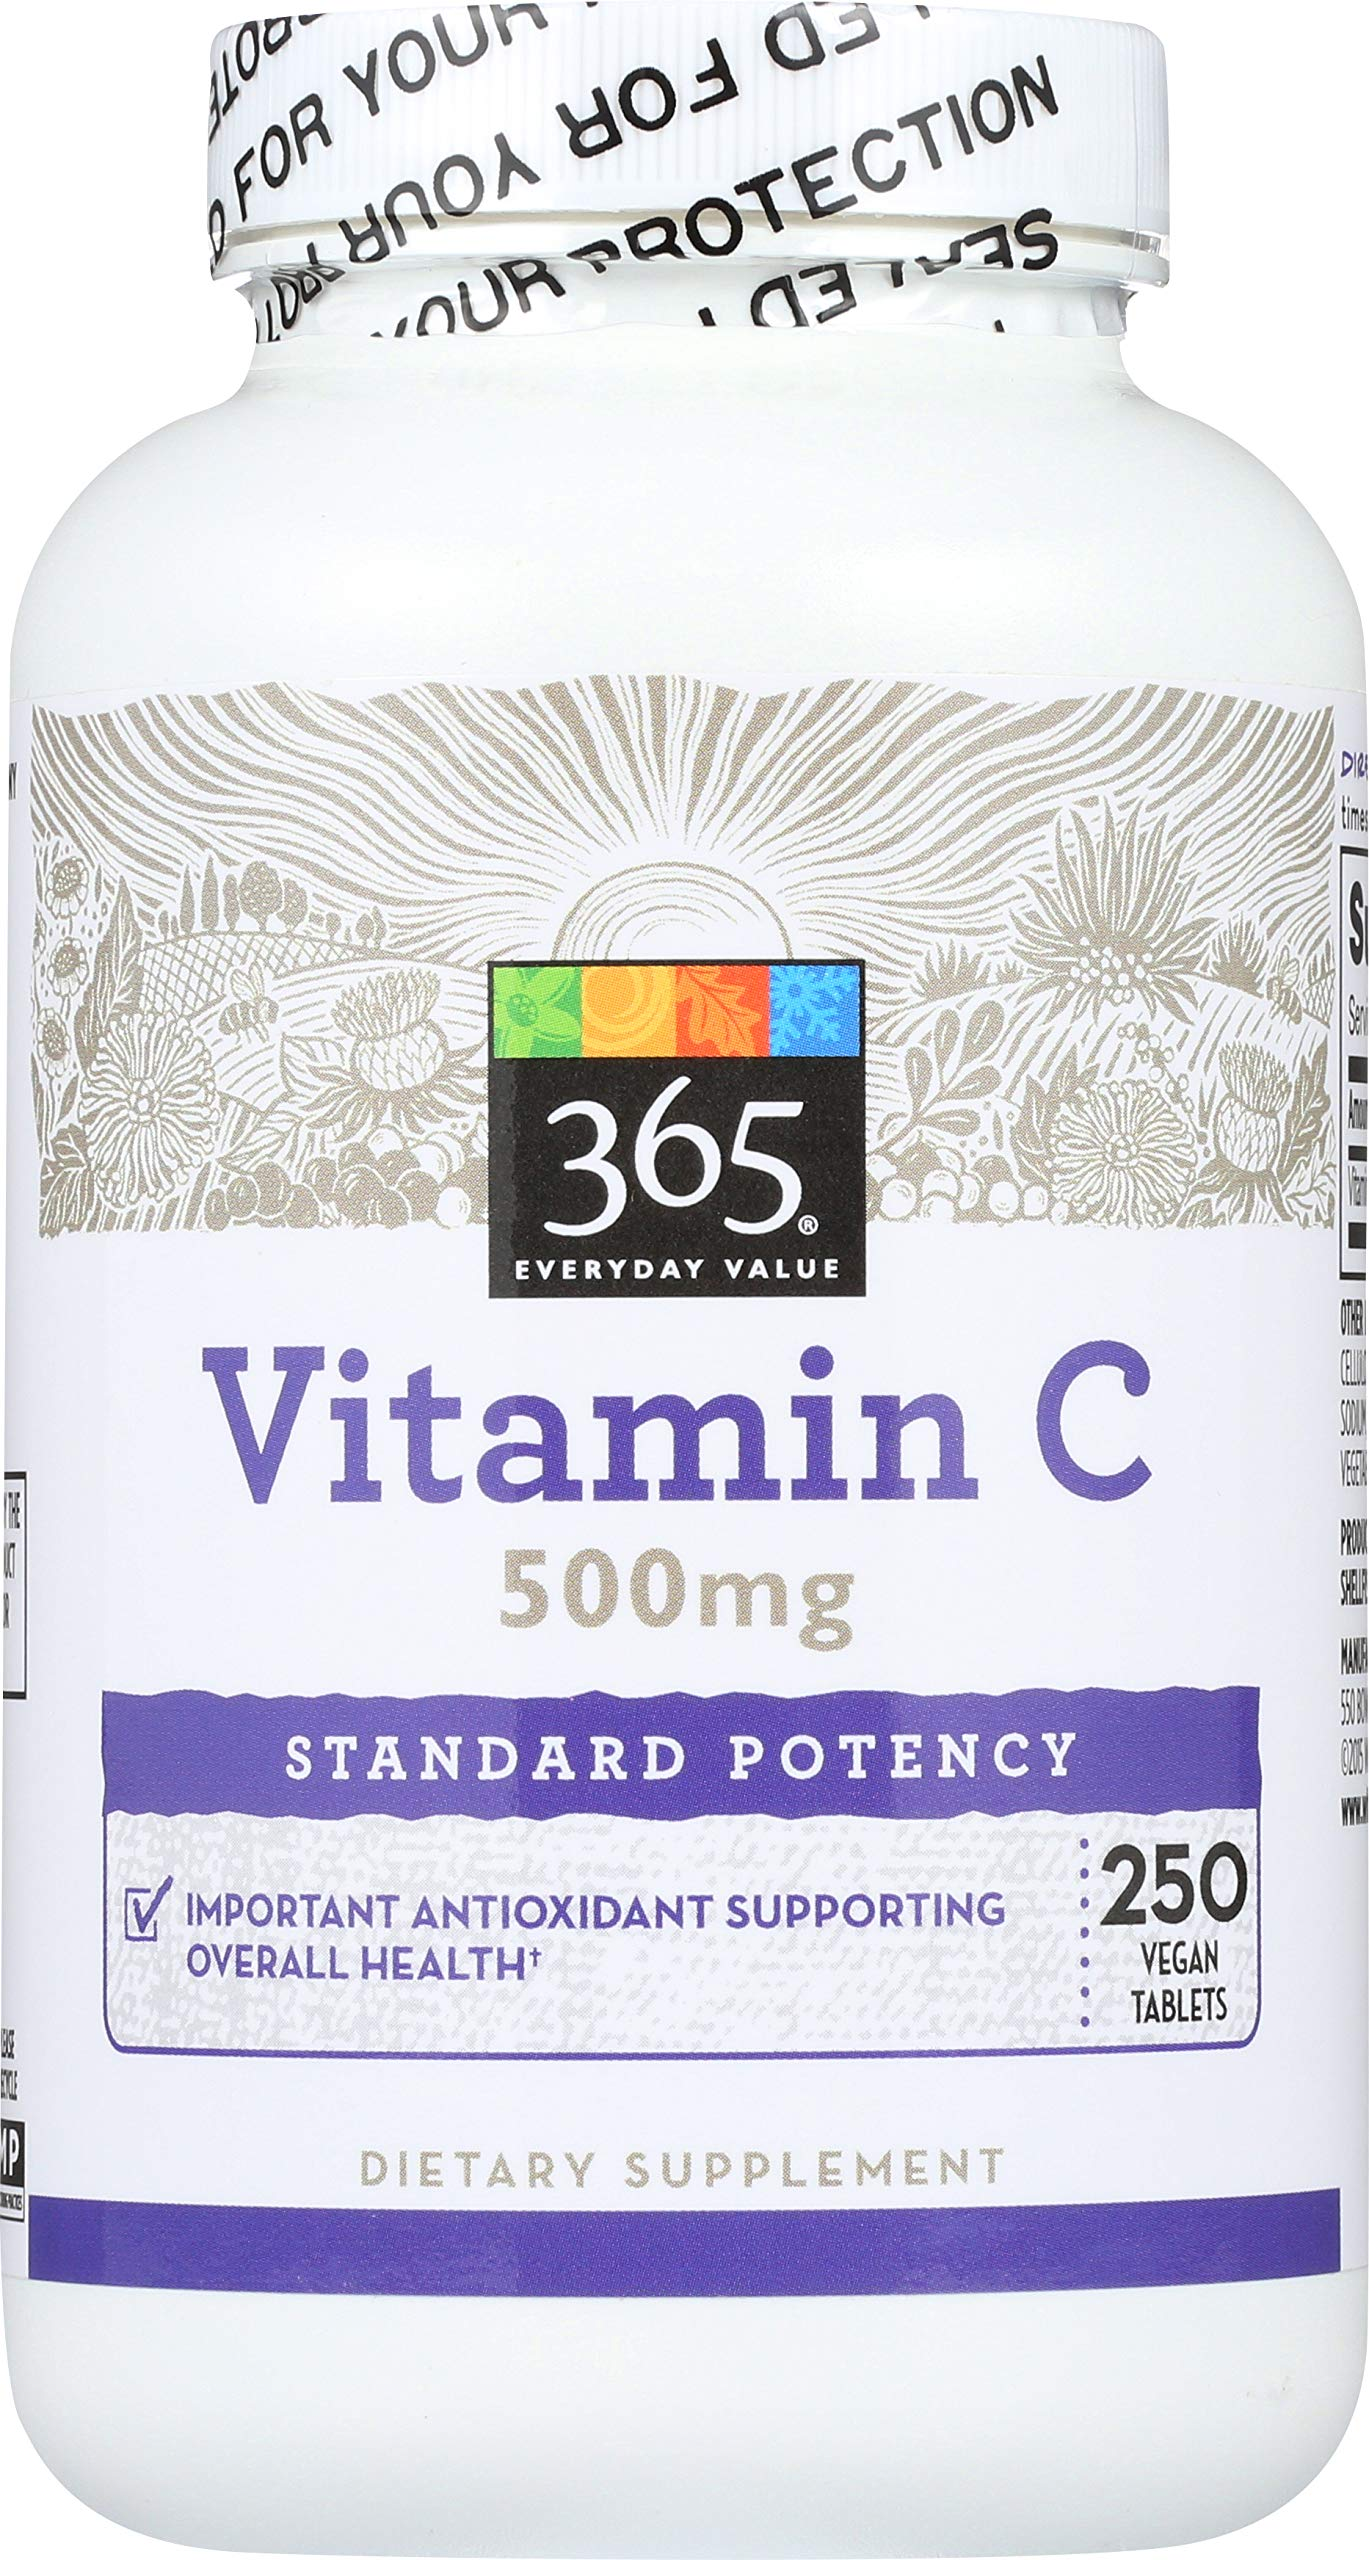 365 Everyday Value, Vitamin C 500mg, 250 ct